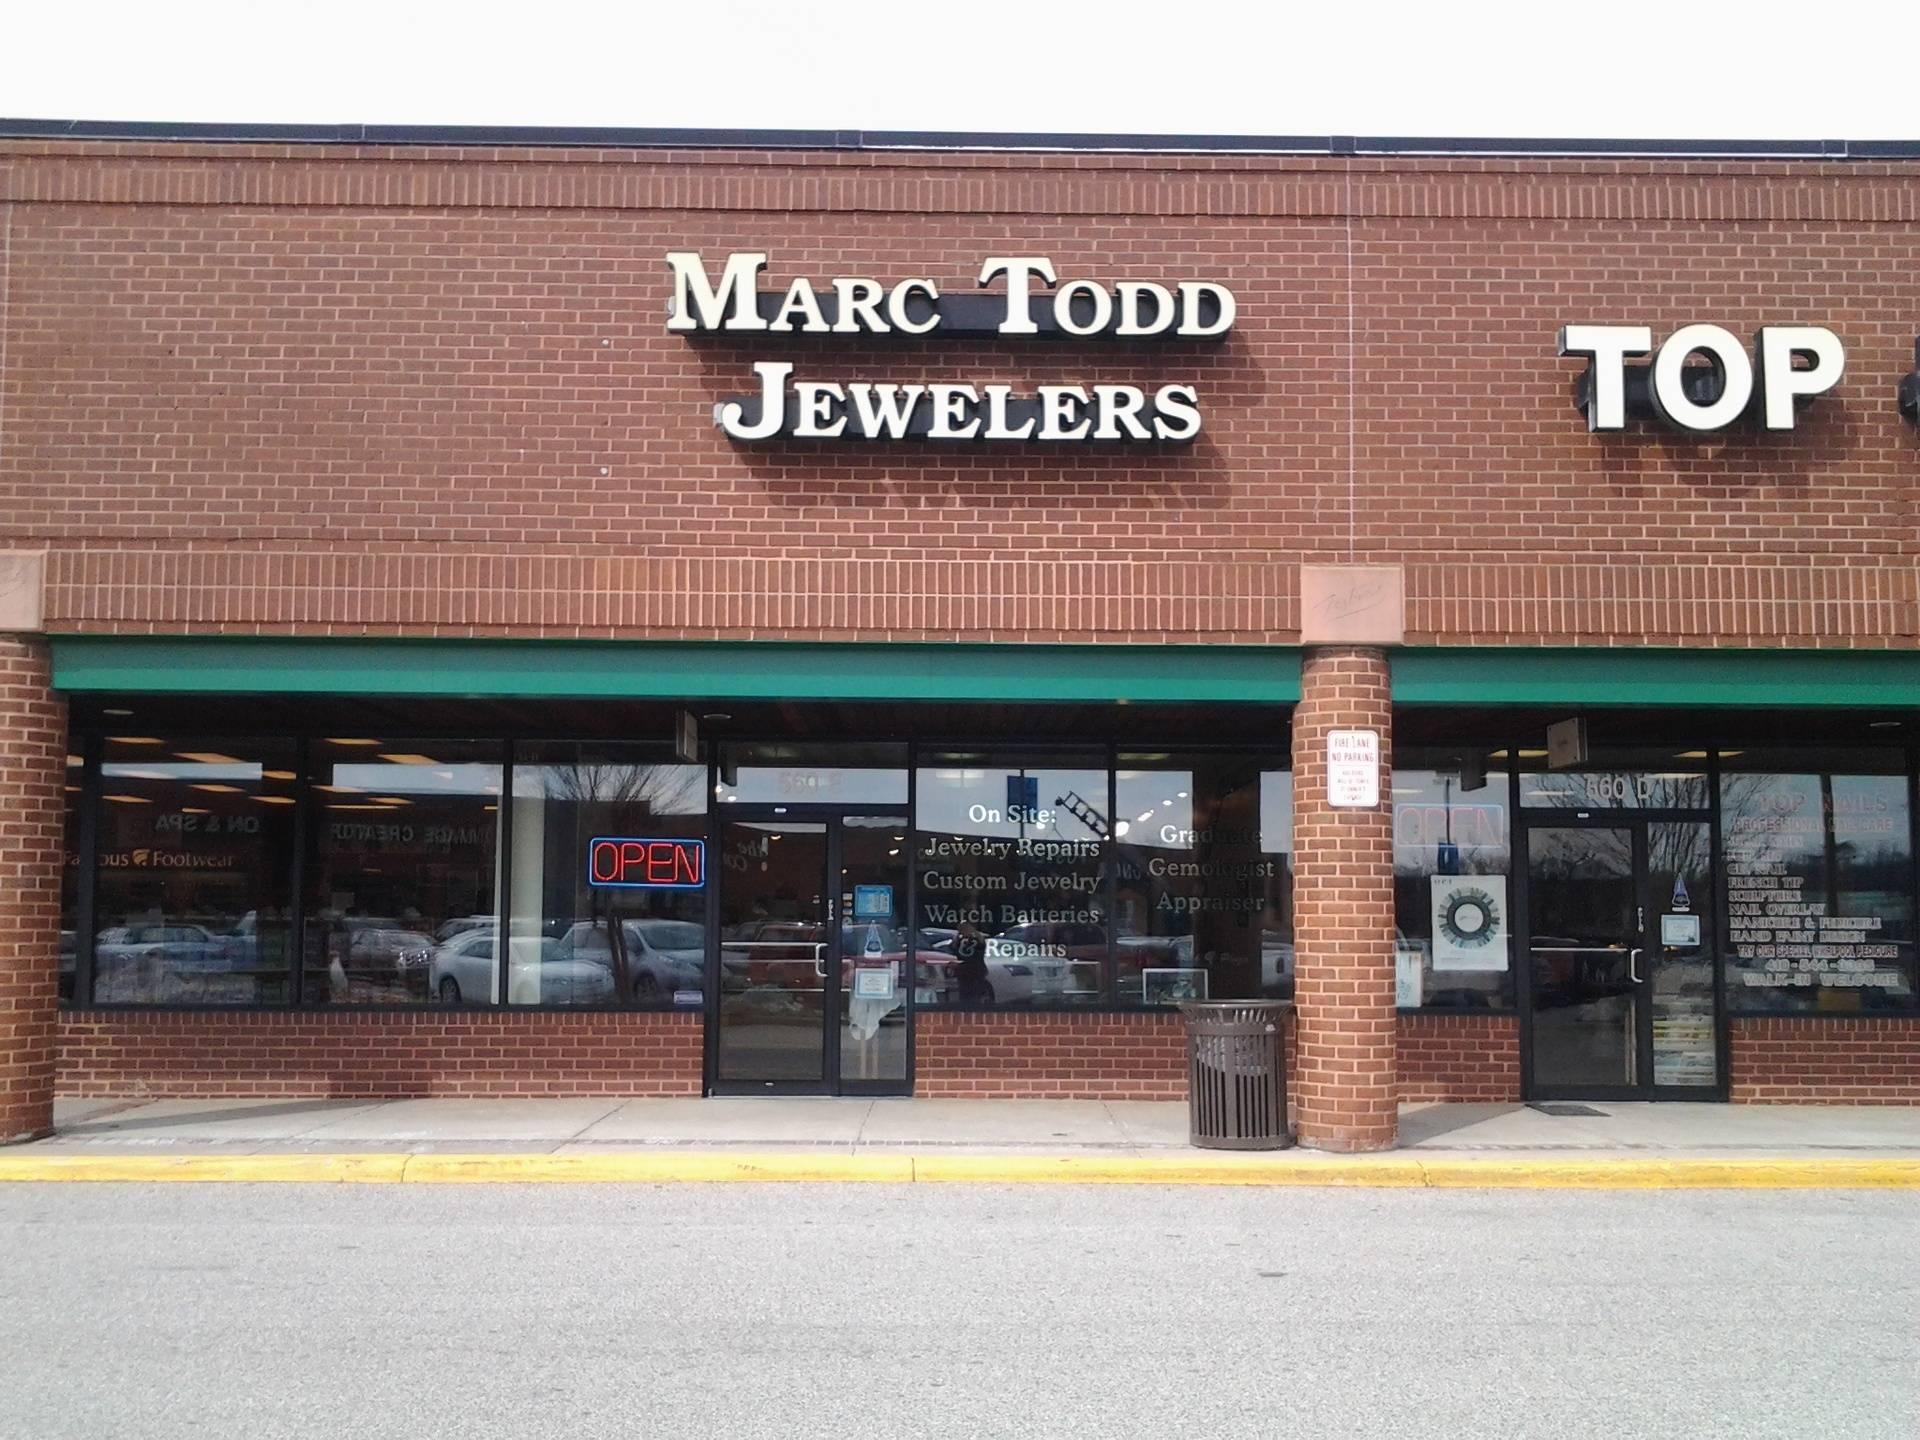 Come Visit Us in Park Plaza Shopping Center, 560-E Ritchie Hwy, Severna Park, MD - Maryland, 21146